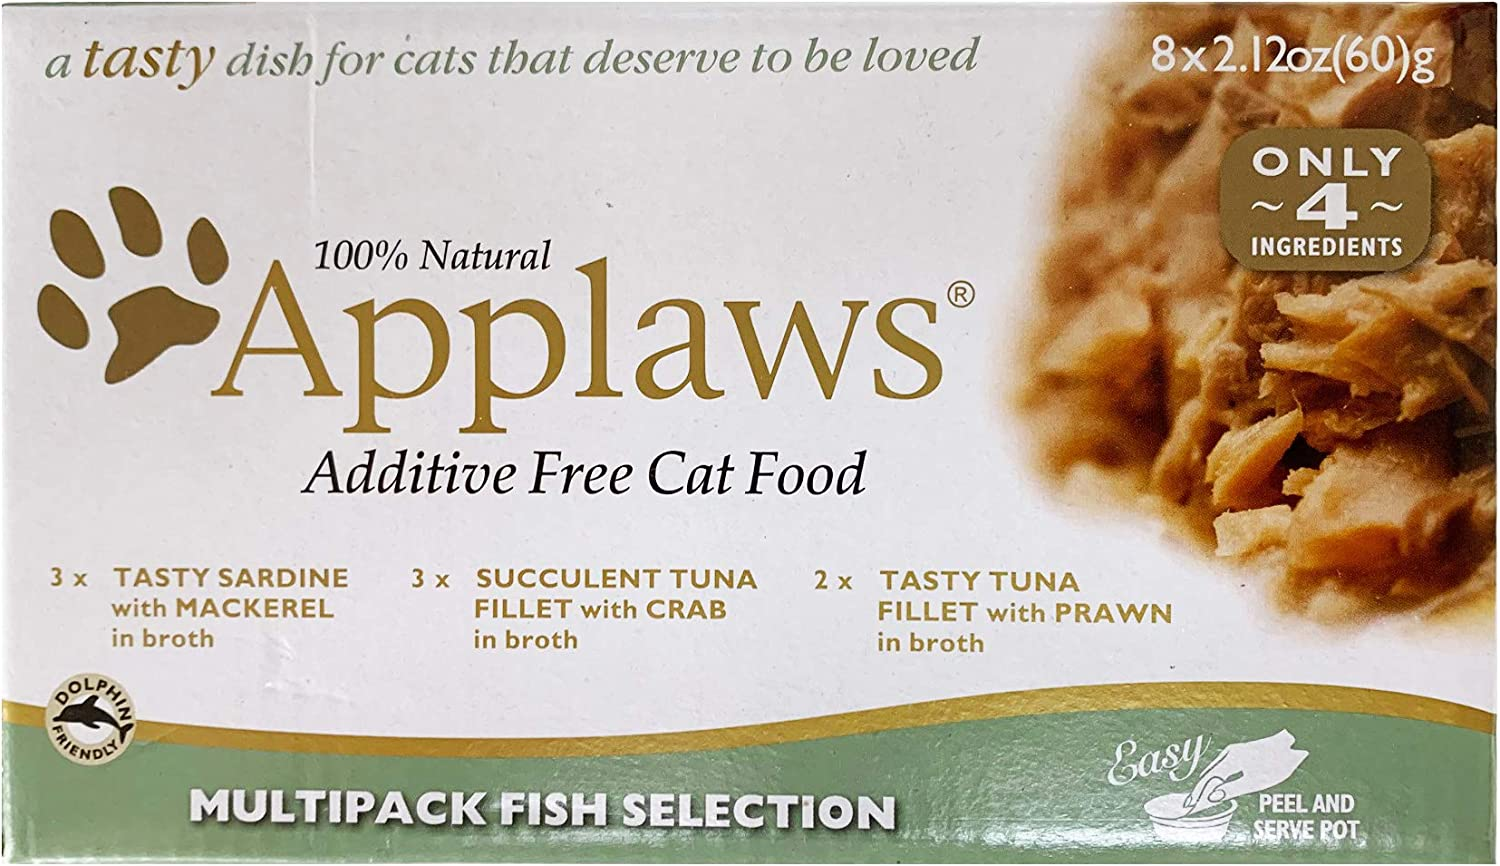 Applaws Multi Pack Selection Fish Cat Food Natural Additive Free 2.12Z 8Ct